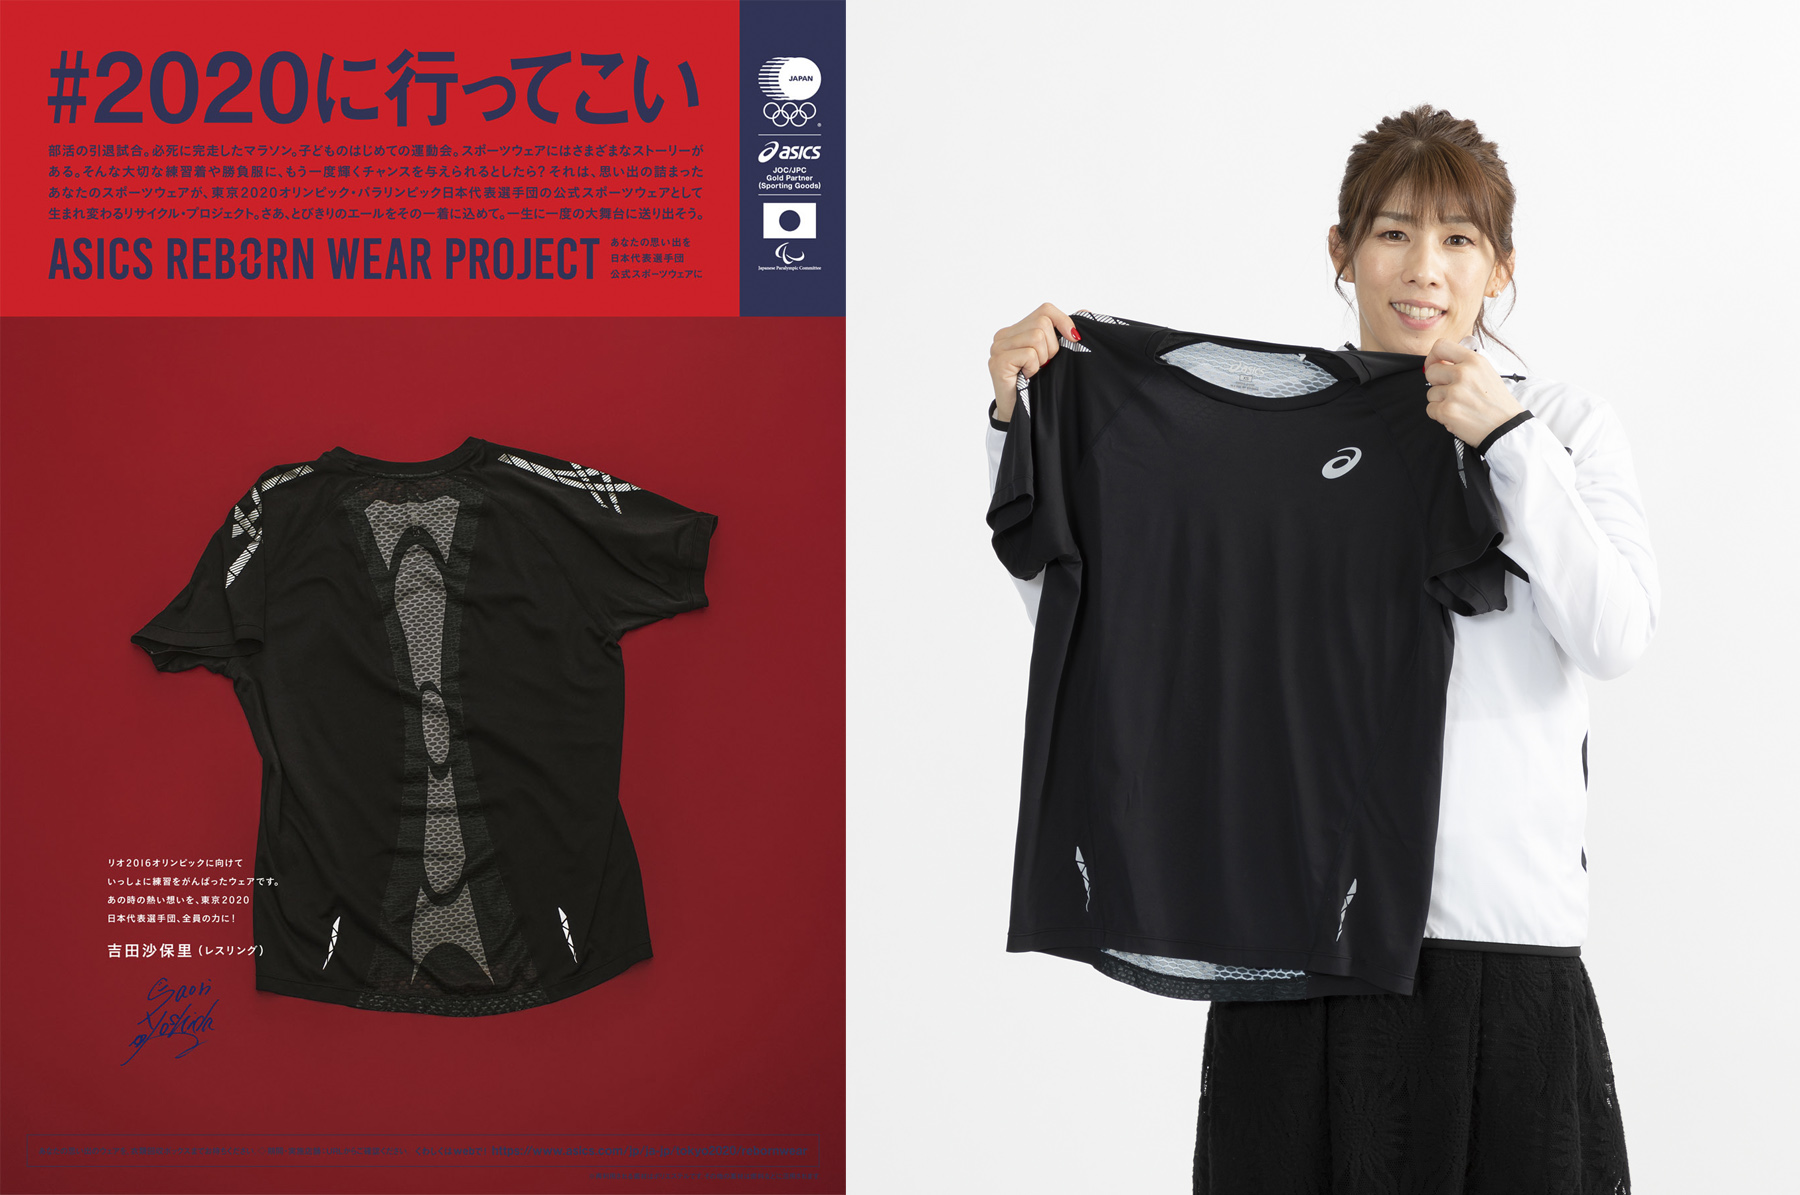 gran selección sitio autorizado el precio se mantiene estable ASICS REBORN WEAR PROJECT LAUNCHES JANUARY 24! RECYCLING PROJECT DELIVERS A  MESSAGE TO ATHLETES: GIVING SPORTSWEAR WITH SENTIMENTAL VALUE NEW LIFE AS  THE OFFICIAL WEAR OF TOKYO 2020 JAPAN OLYMPIC AND PARALYMPIC